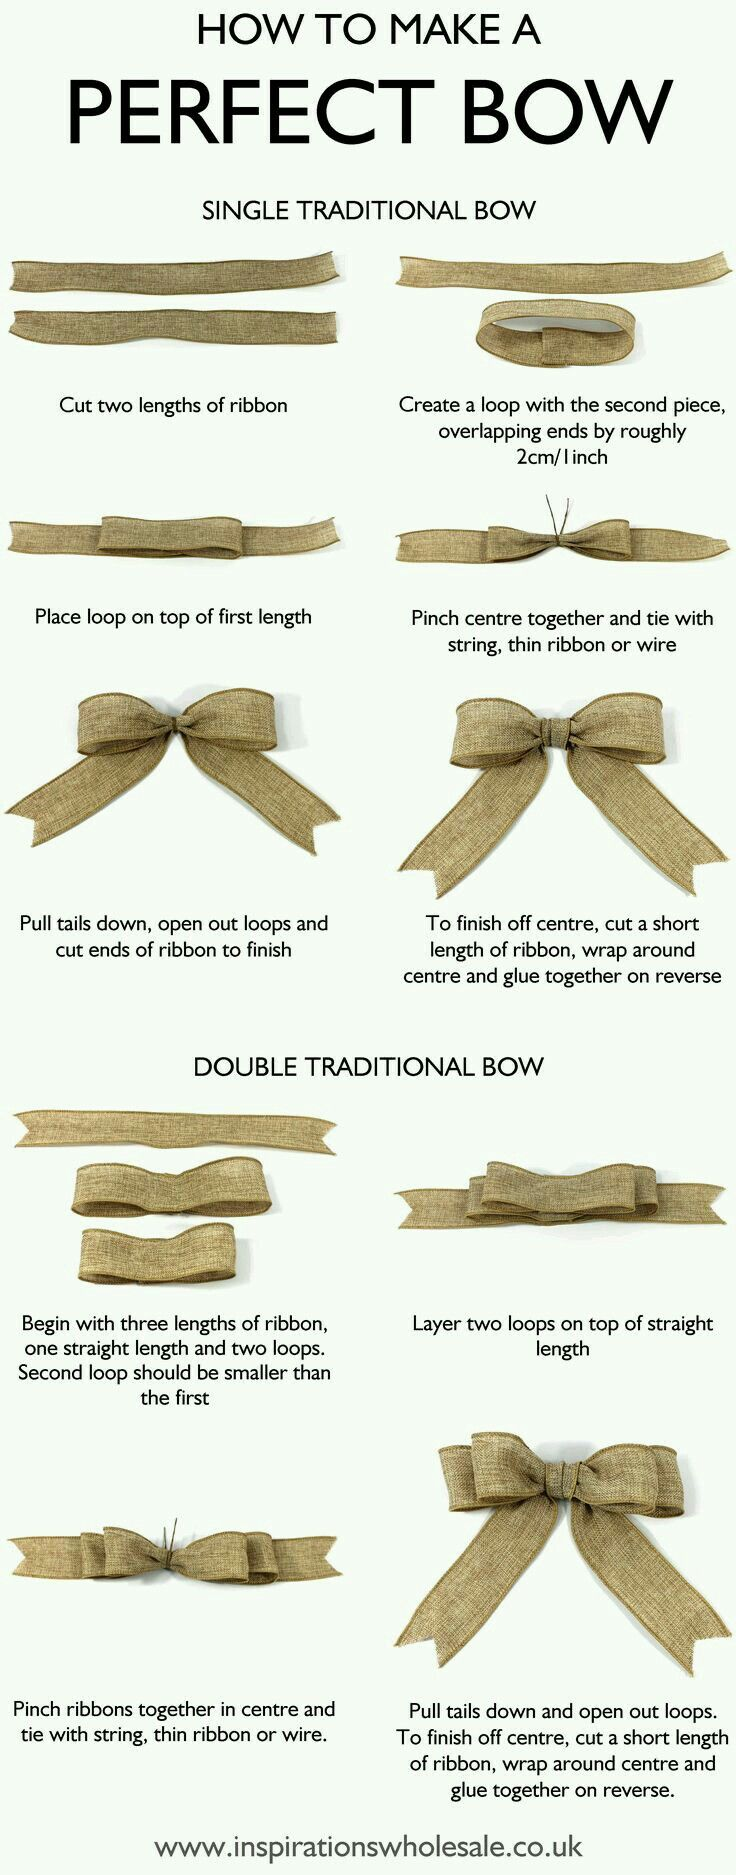 How to make a Perfect Bow for gift wrapping, home décor and crafts ideas – both single traditional bow and the double traditional bow.